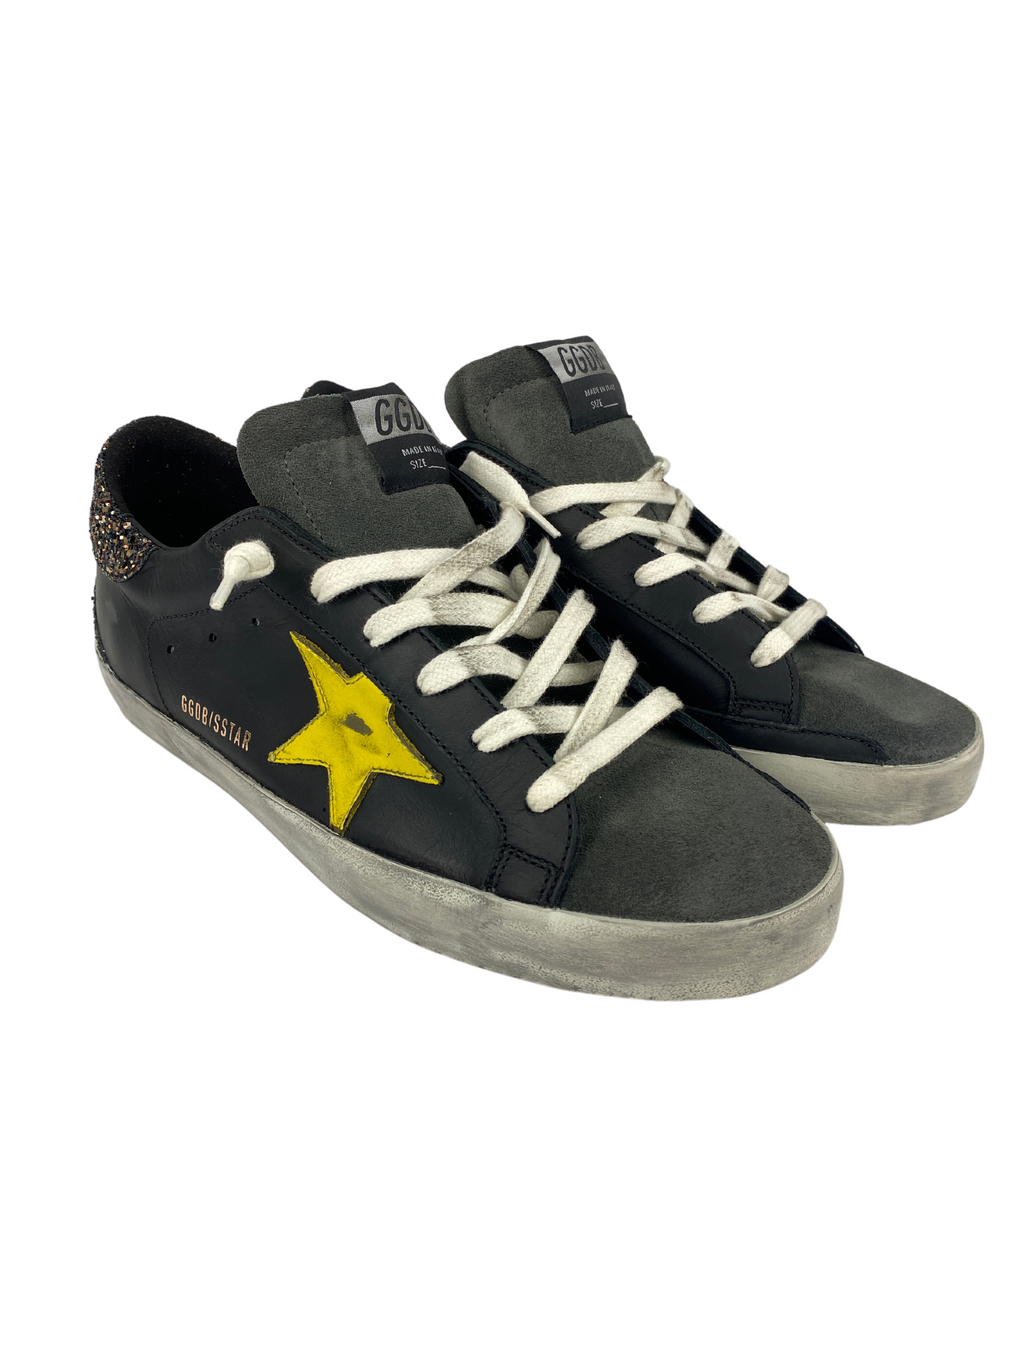 GOLDEN GOOSE - SUPERSTAR BLACK GLITTER YELLOW - SIZE 41 NEW IN BOX